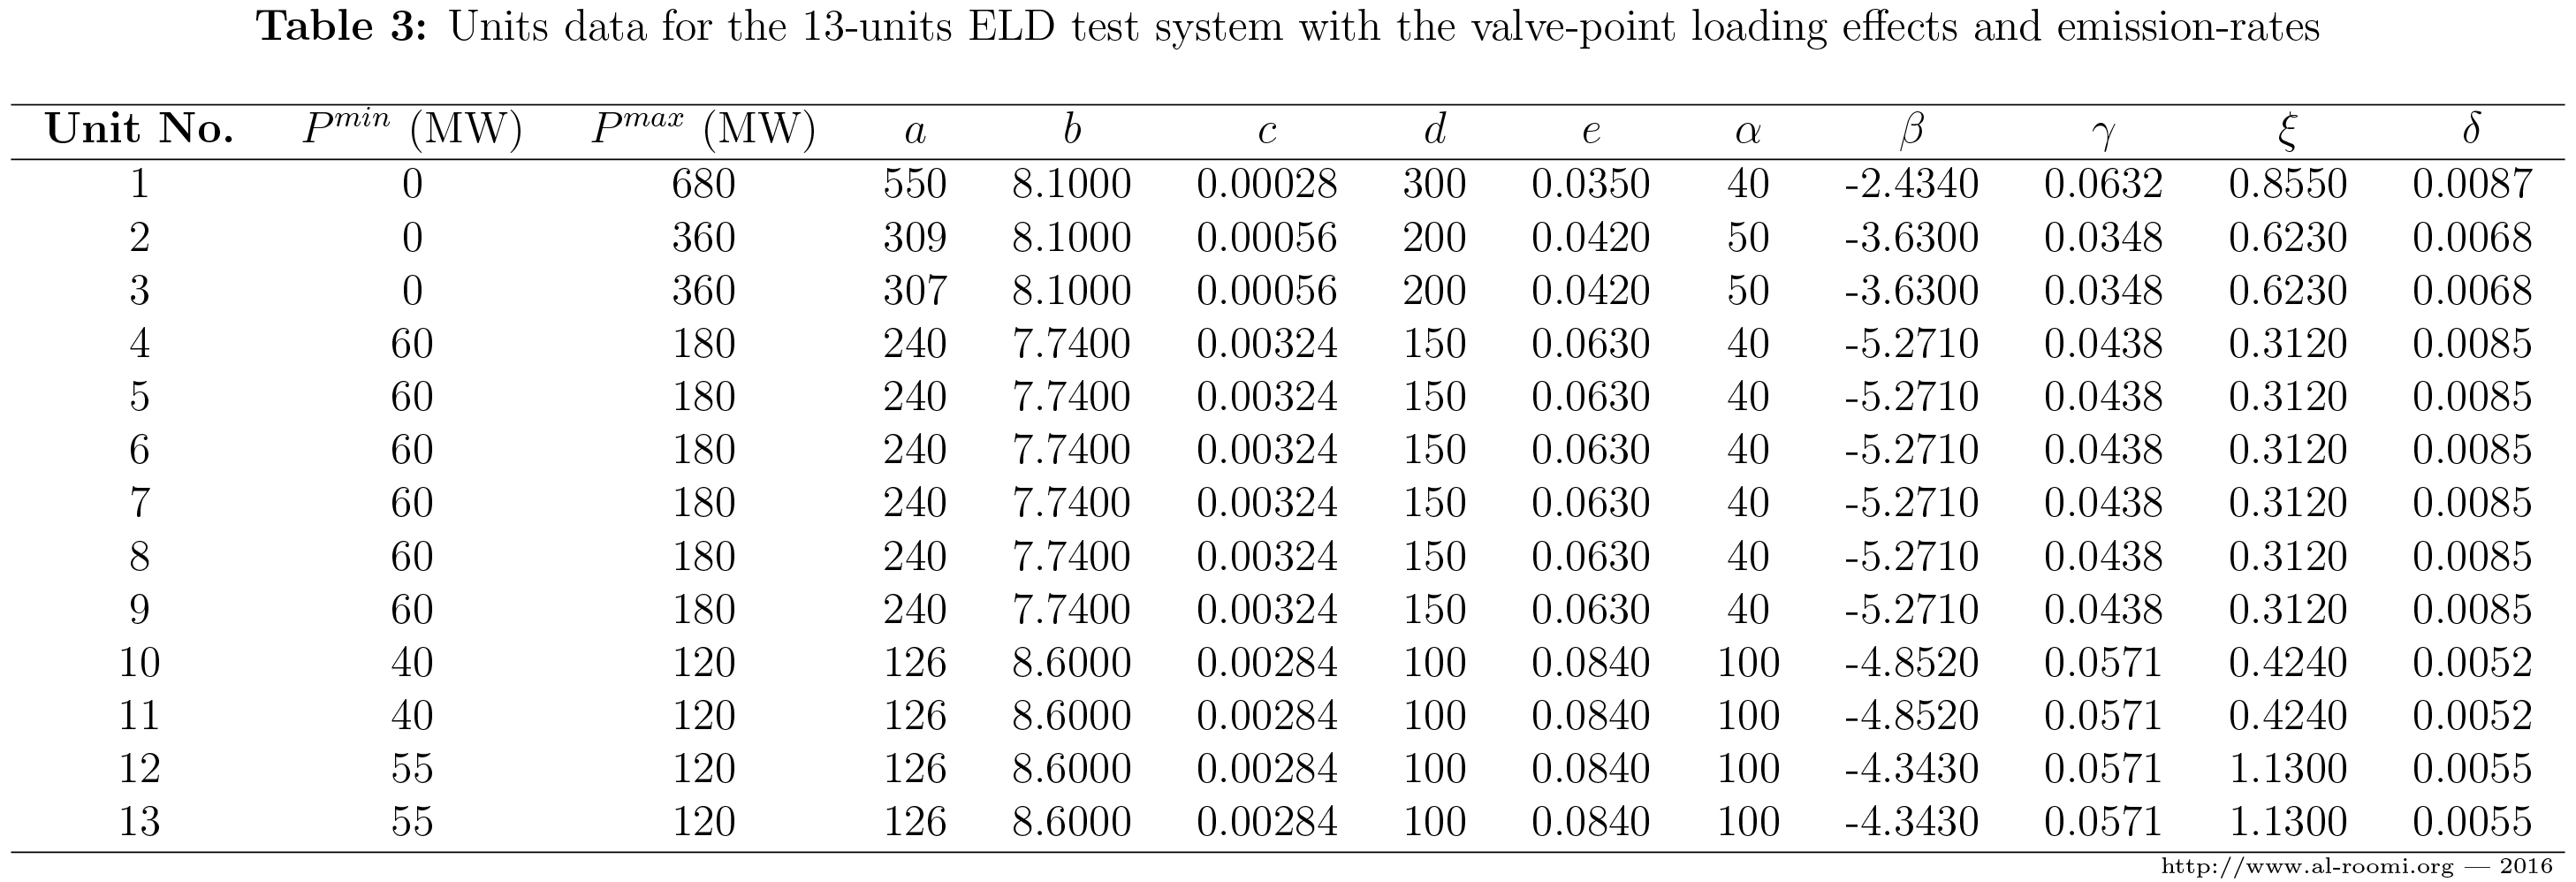 Power Systems and Evolutionary Algorithms - 13-Units System